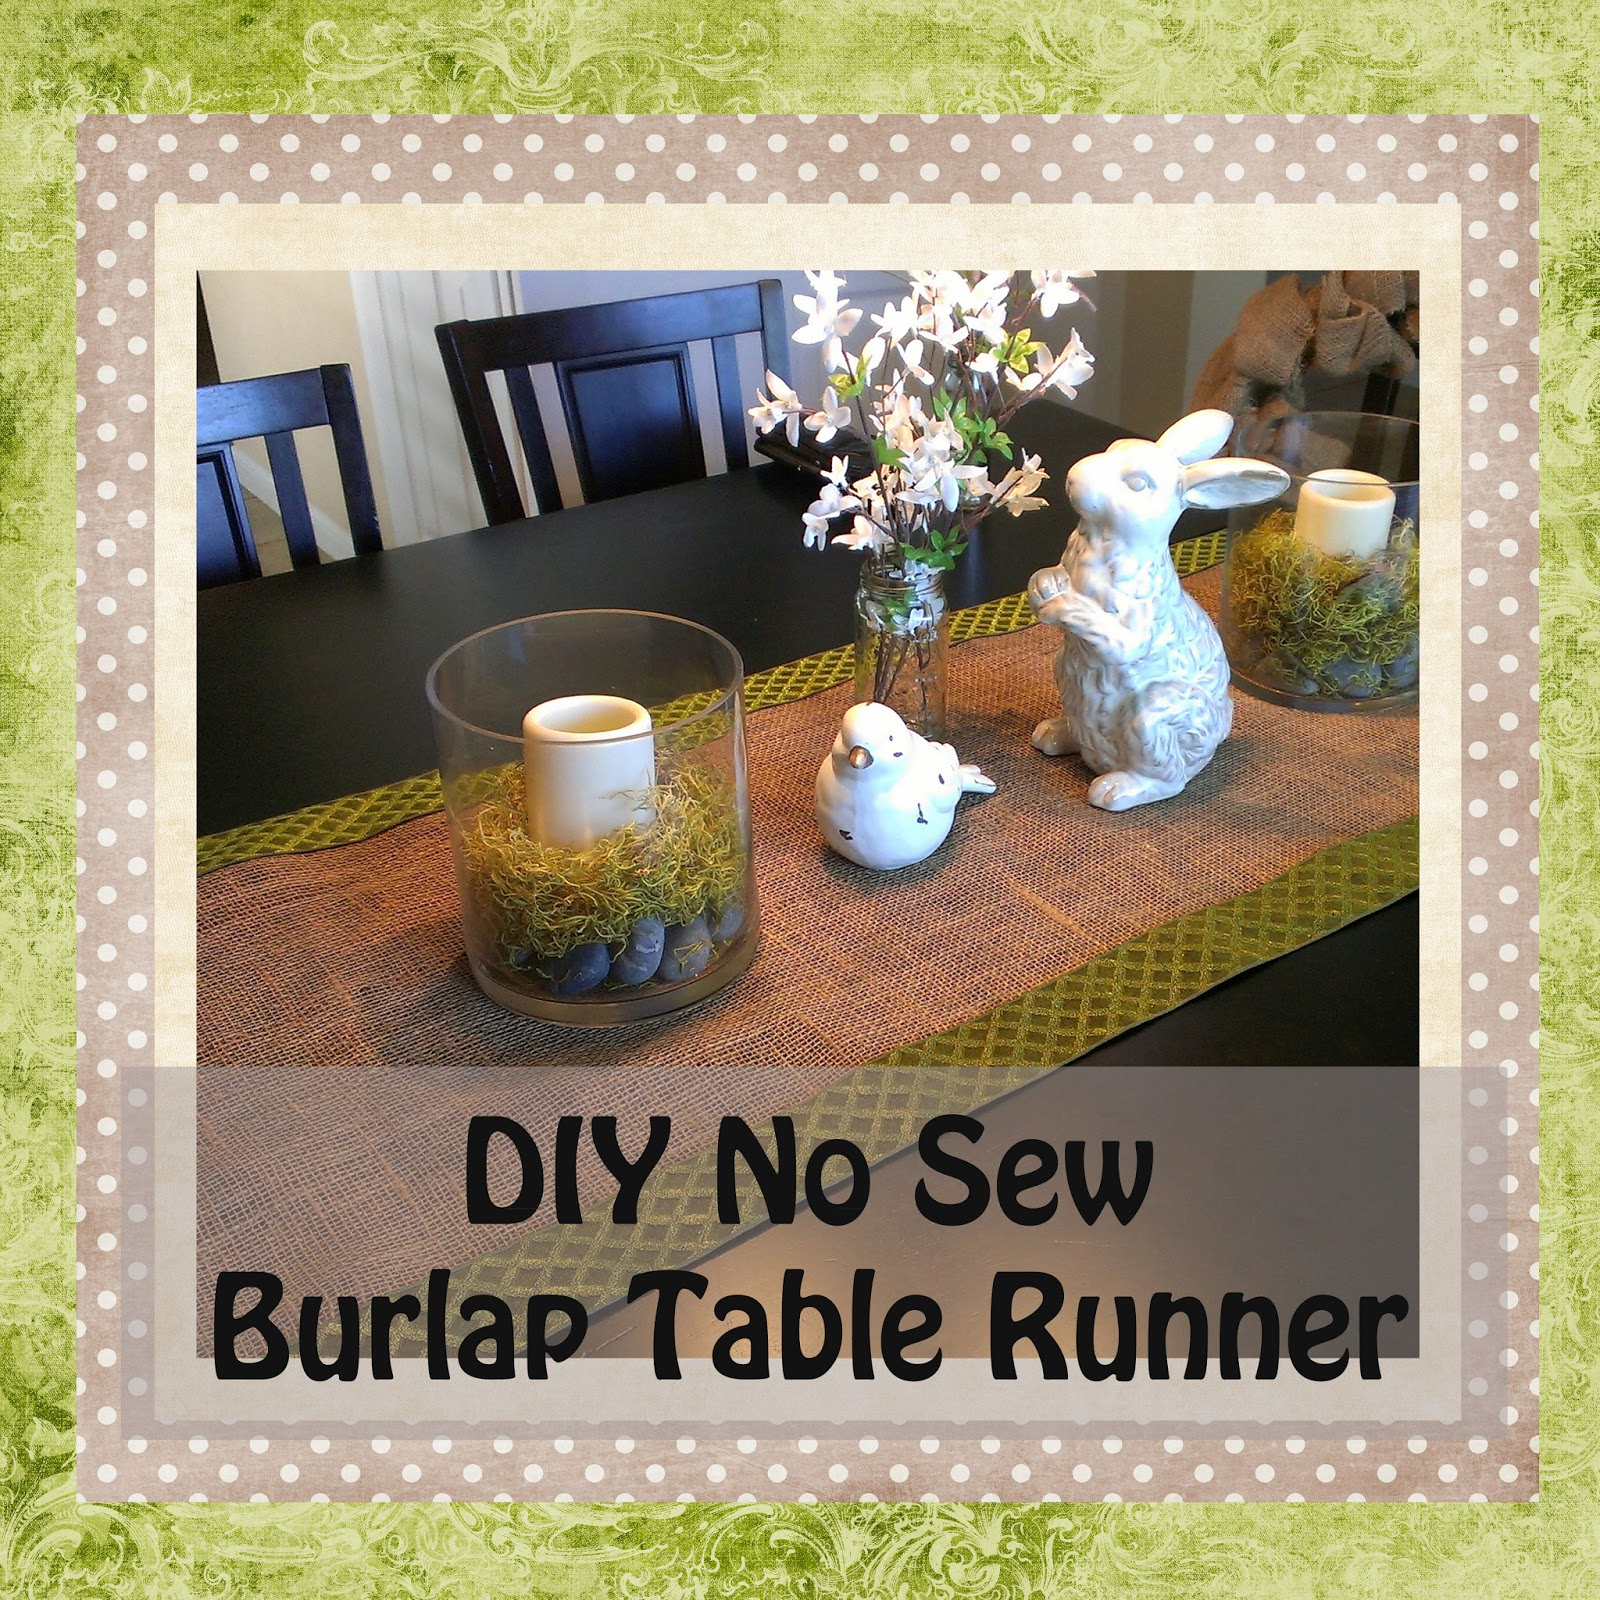 Gloriously made diy no sew burlap table runner for Easy diy table runner